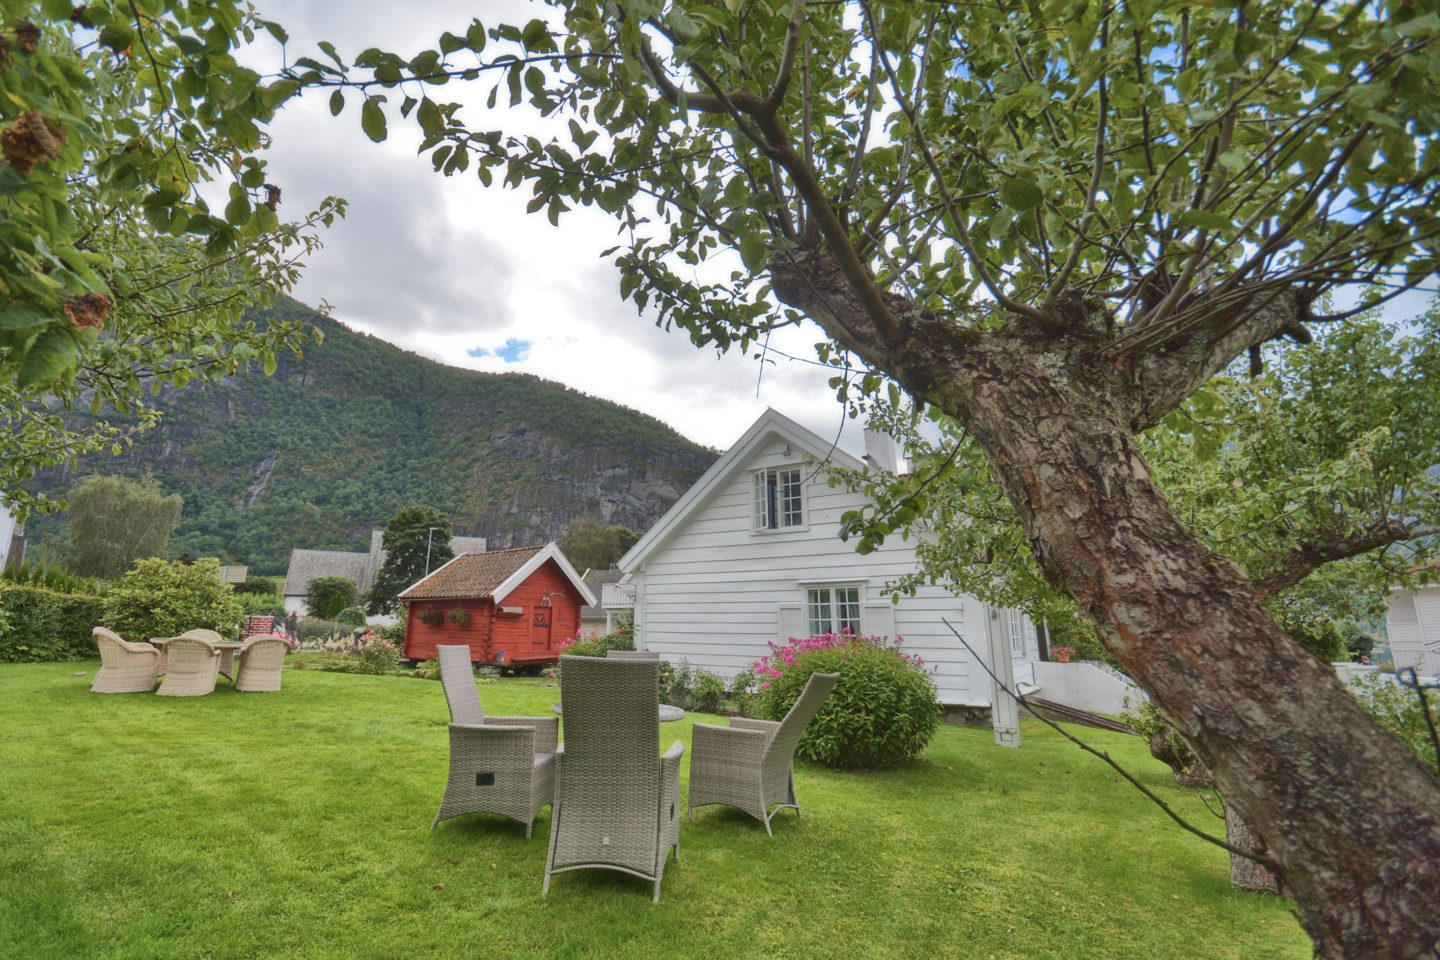 5 Things I'll Miss About Living by the Fjords